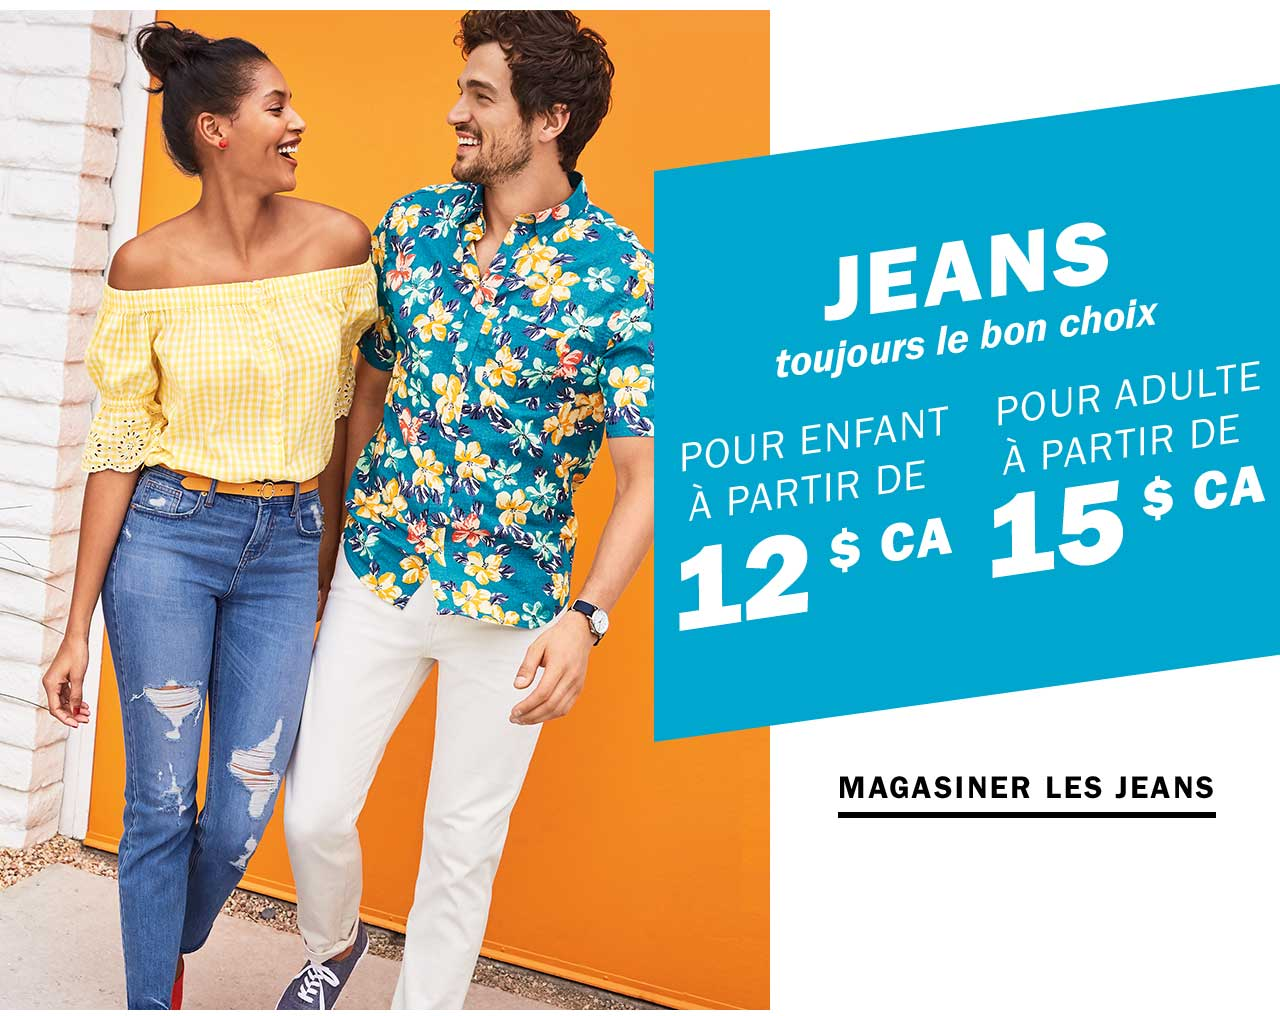 JEANS | MAGASINER LES JEANS